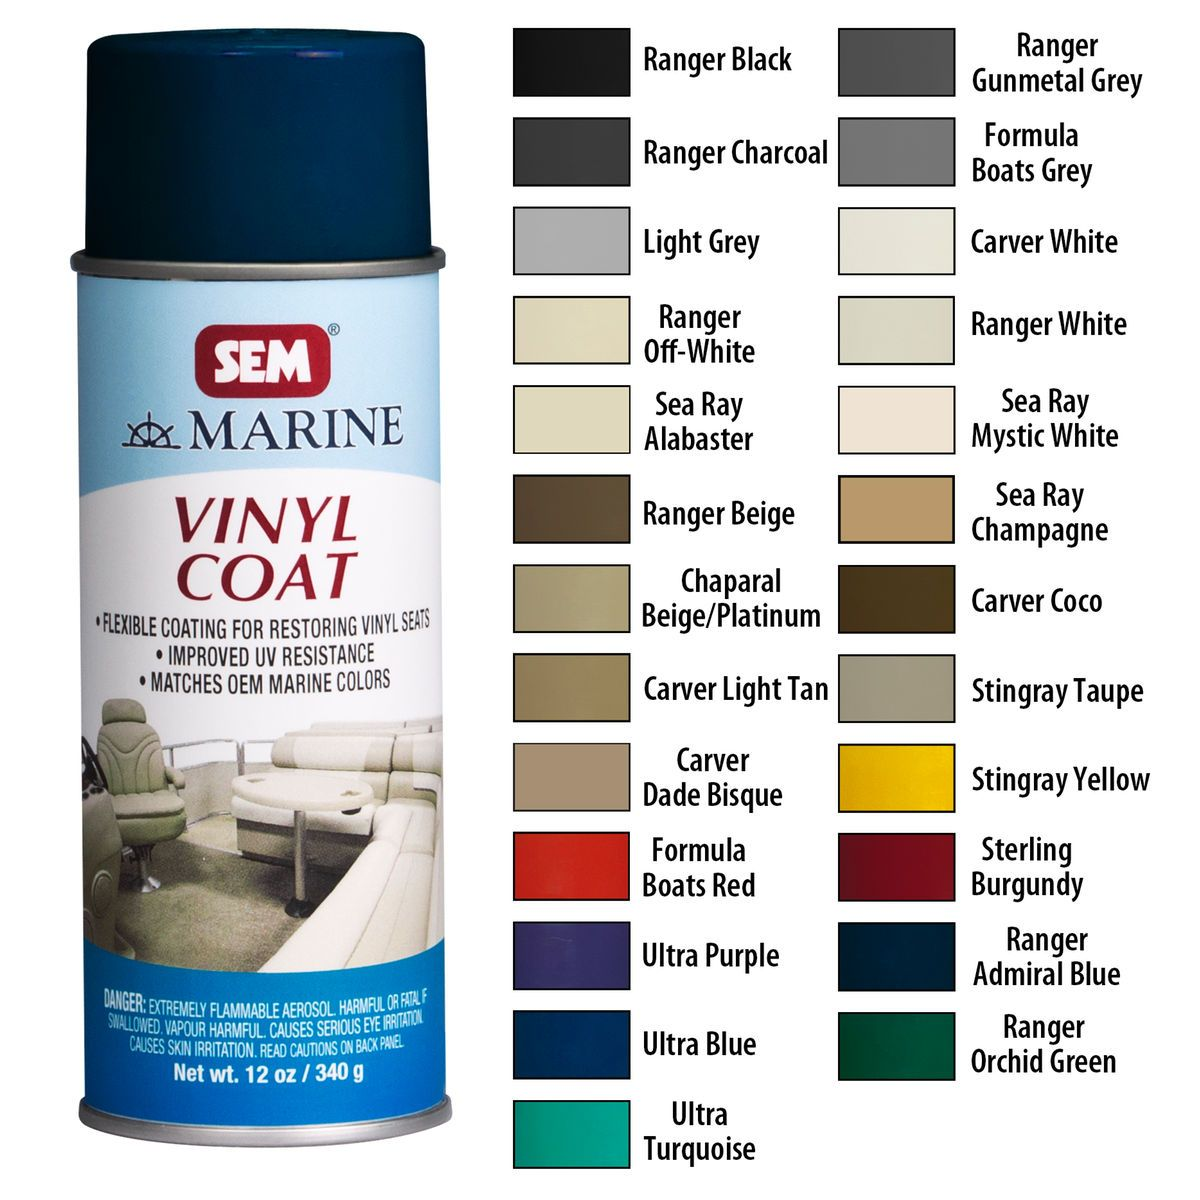 Uncategorized Vinyl Coat Paint refinish faux leather chair with sem marine vinyl coat spray boat paint is an elastomeric coating formulated to match restore or change the color of most surfaces and rigid pla